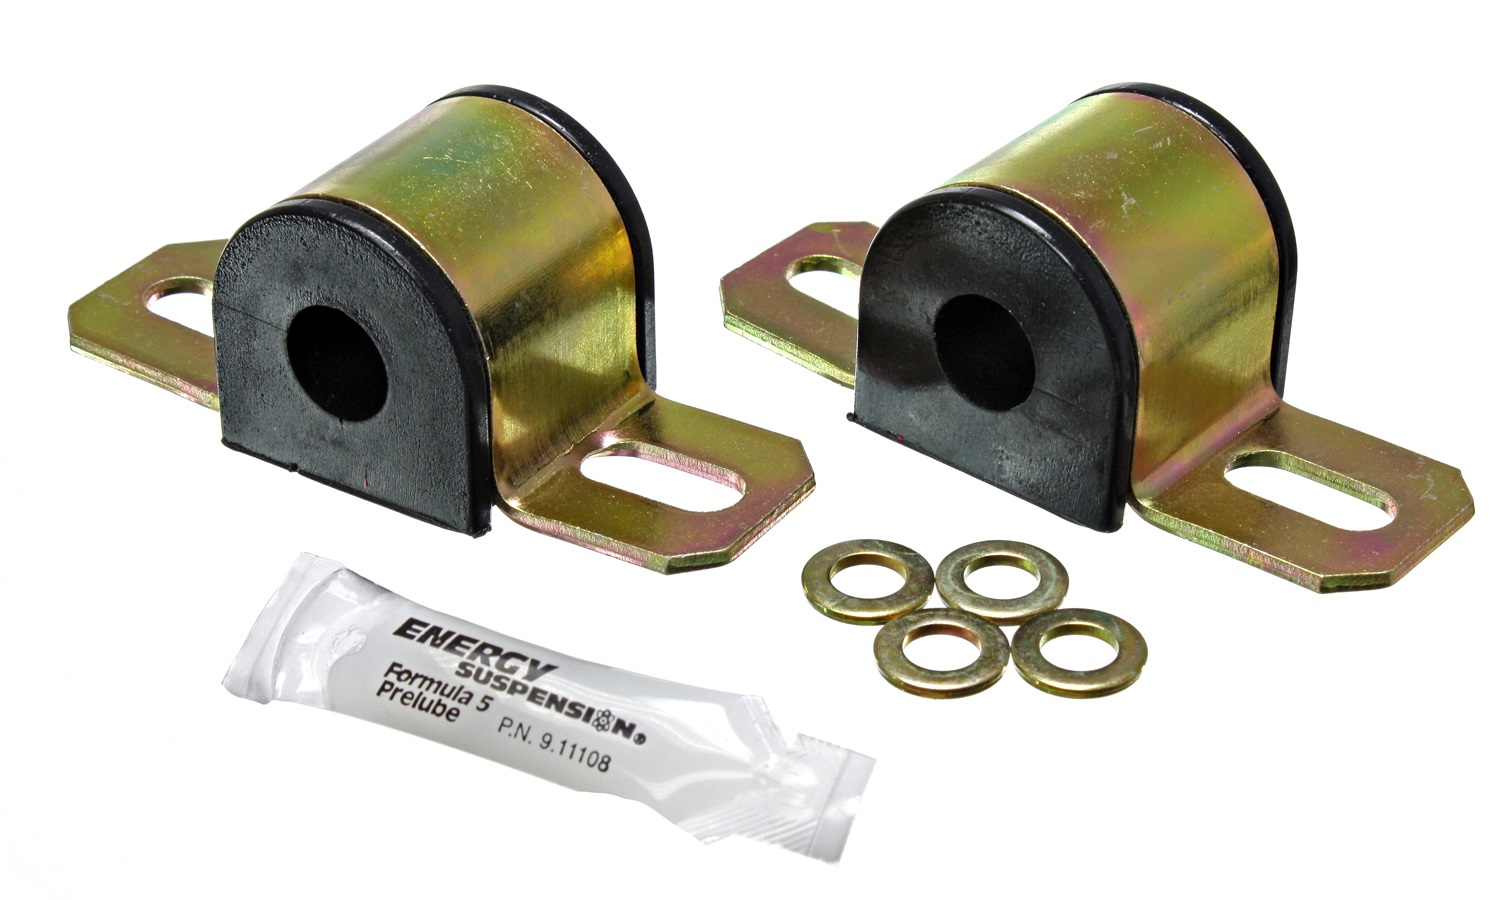 Energy Suspension Suspension Stabilizer Bar Bushing Kit (9.5104G)